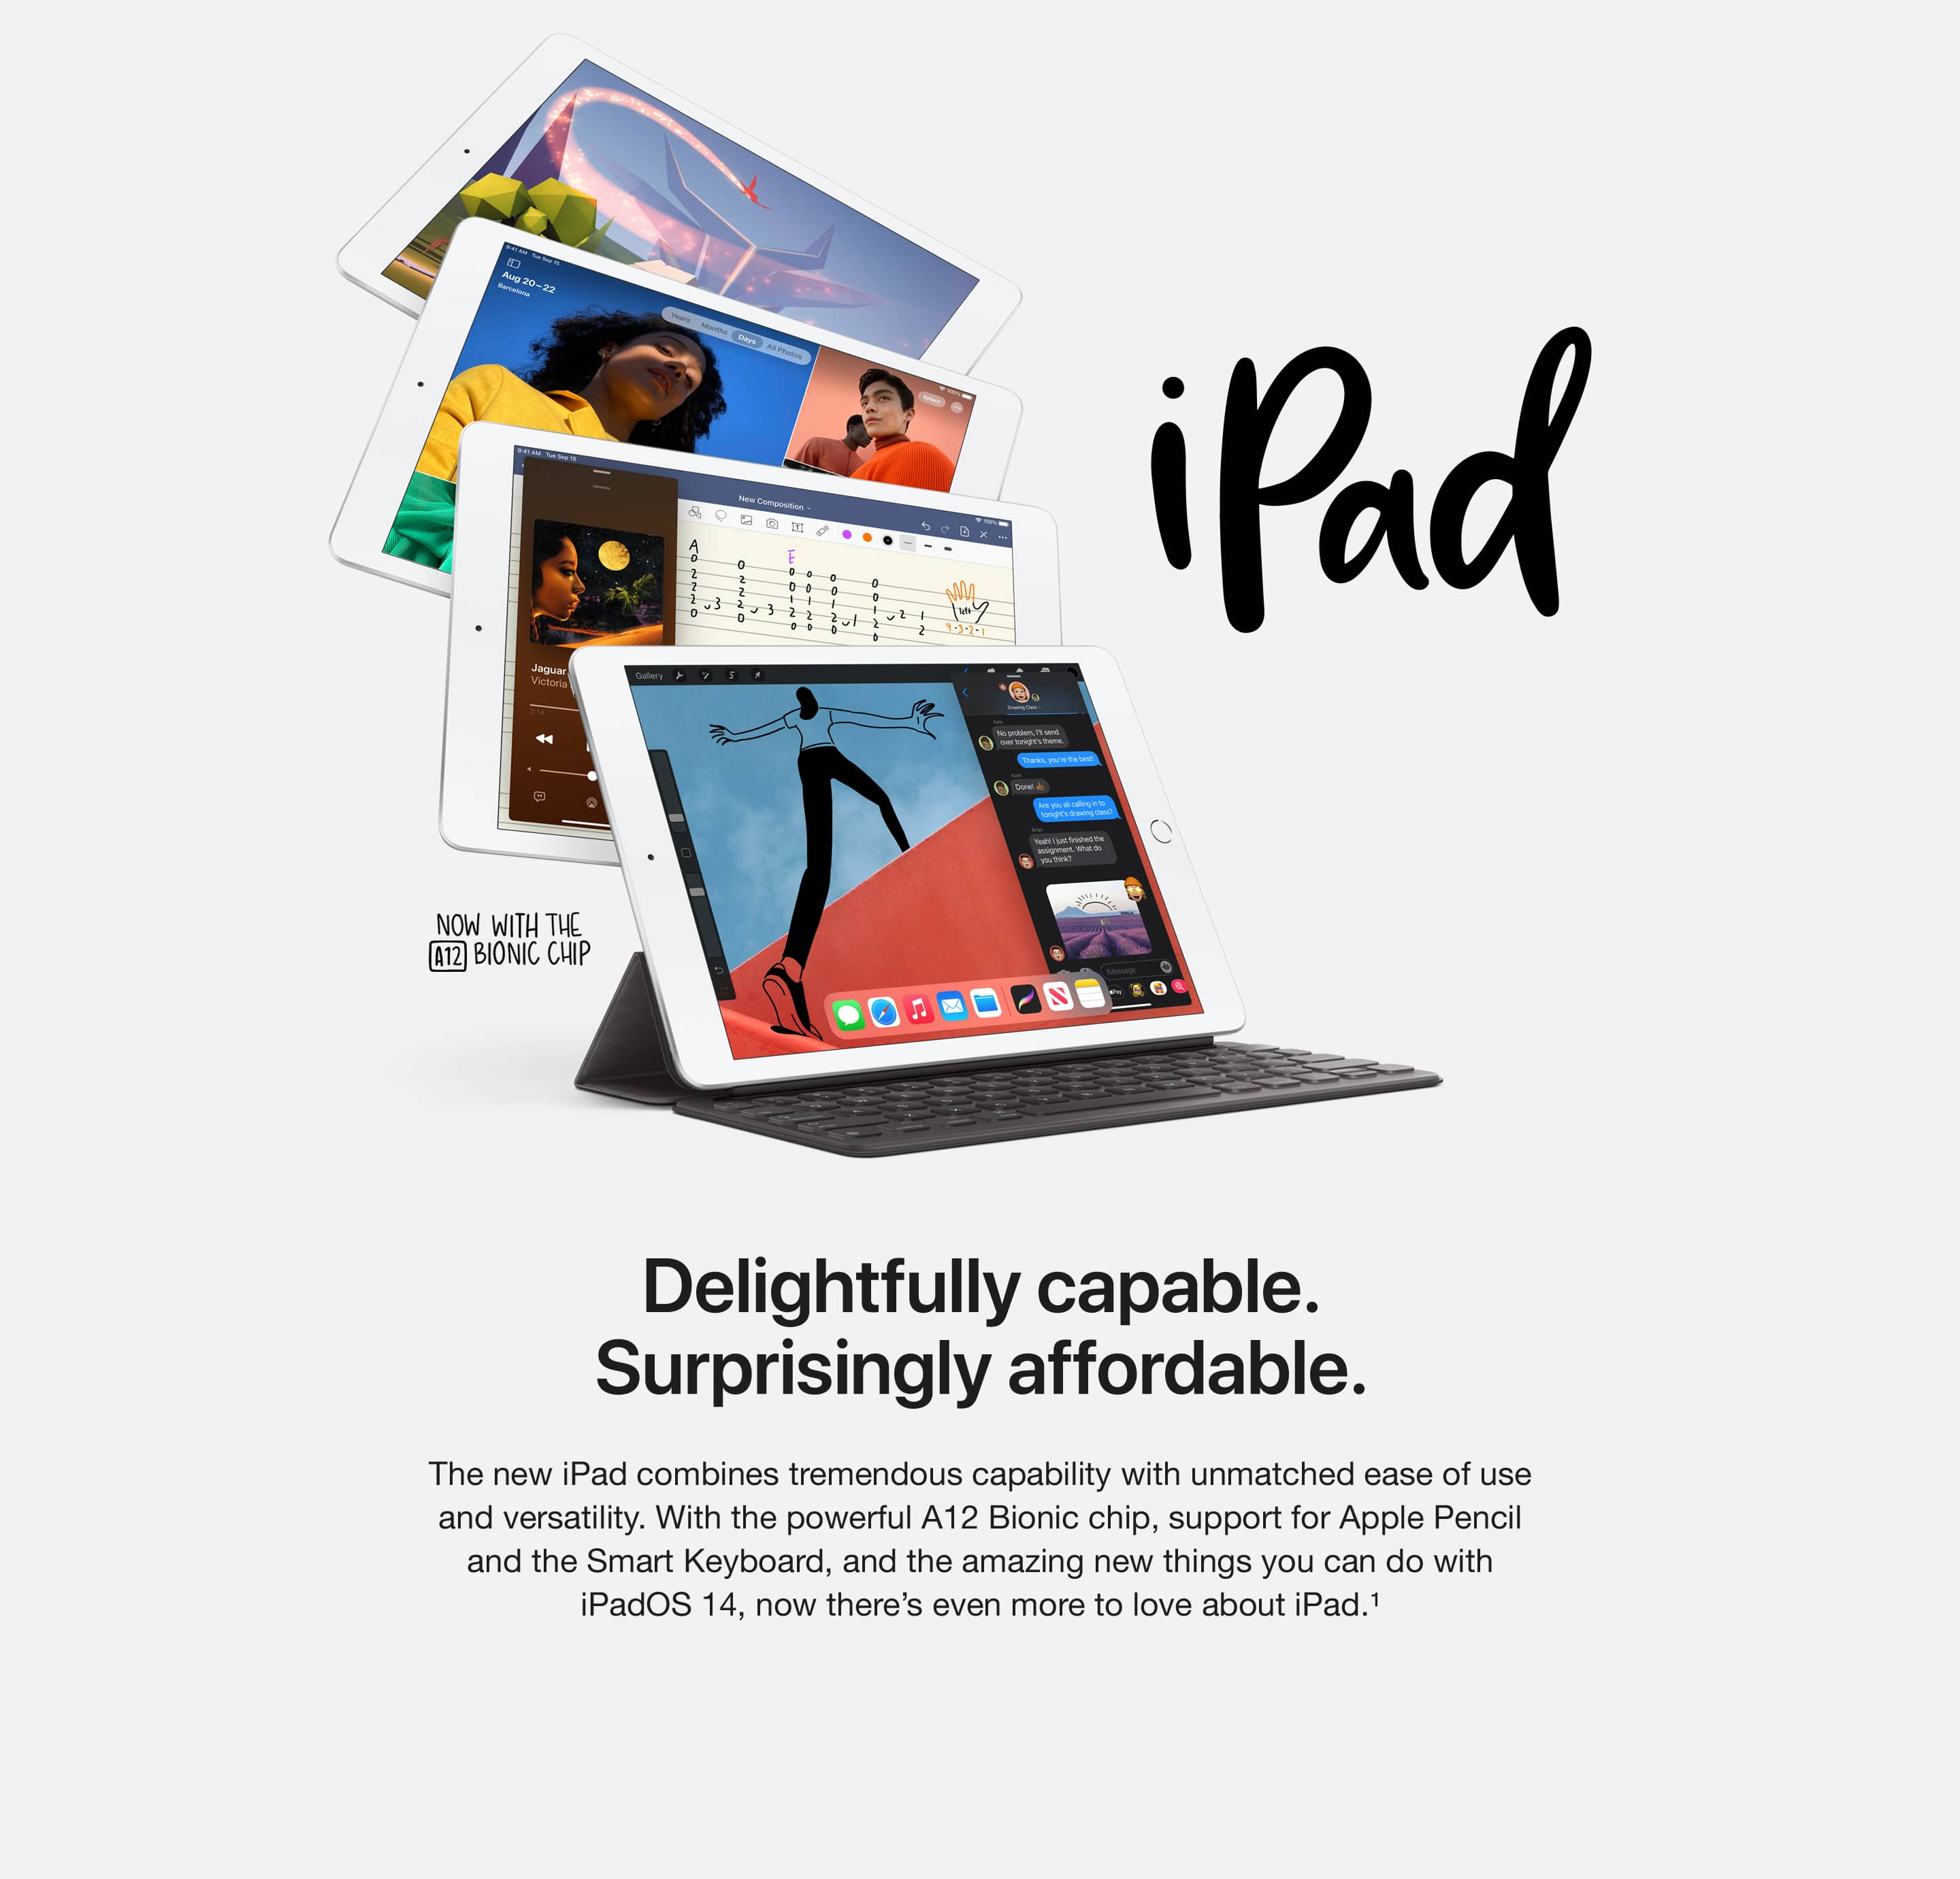 iPad. Delightfully capable. Surprisingly affordable. The new iPad combines tremendous capability with unmatched ease of use and versatility. With the powerful A12 Bionic chip, support for Apple Pencil and the Smart Keyboard, and the amazing new things you can do with iPadOS 14, now there's even more to love about iPad.(1)